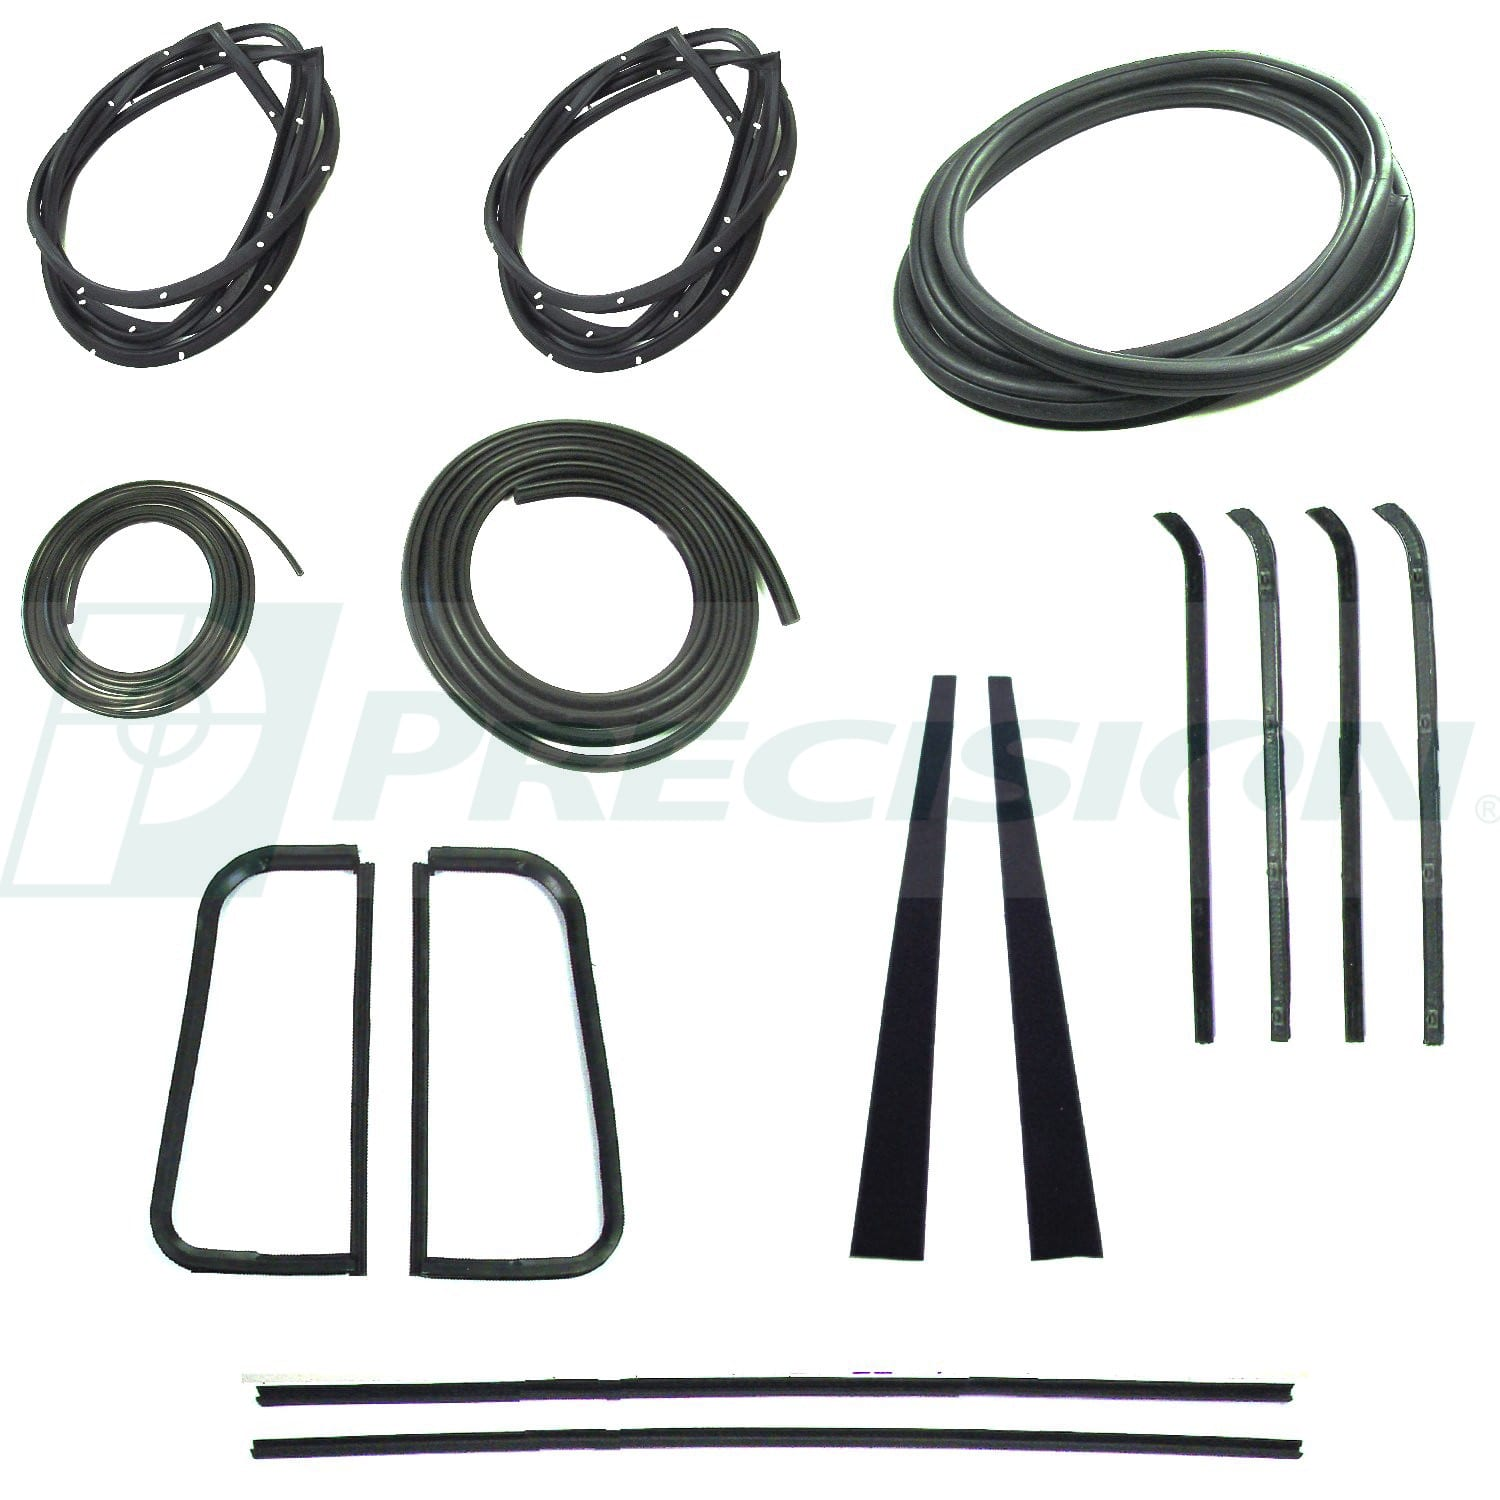 1955-1959 GM Pickup Weatherstrip Kit with Windshield Trim Groove